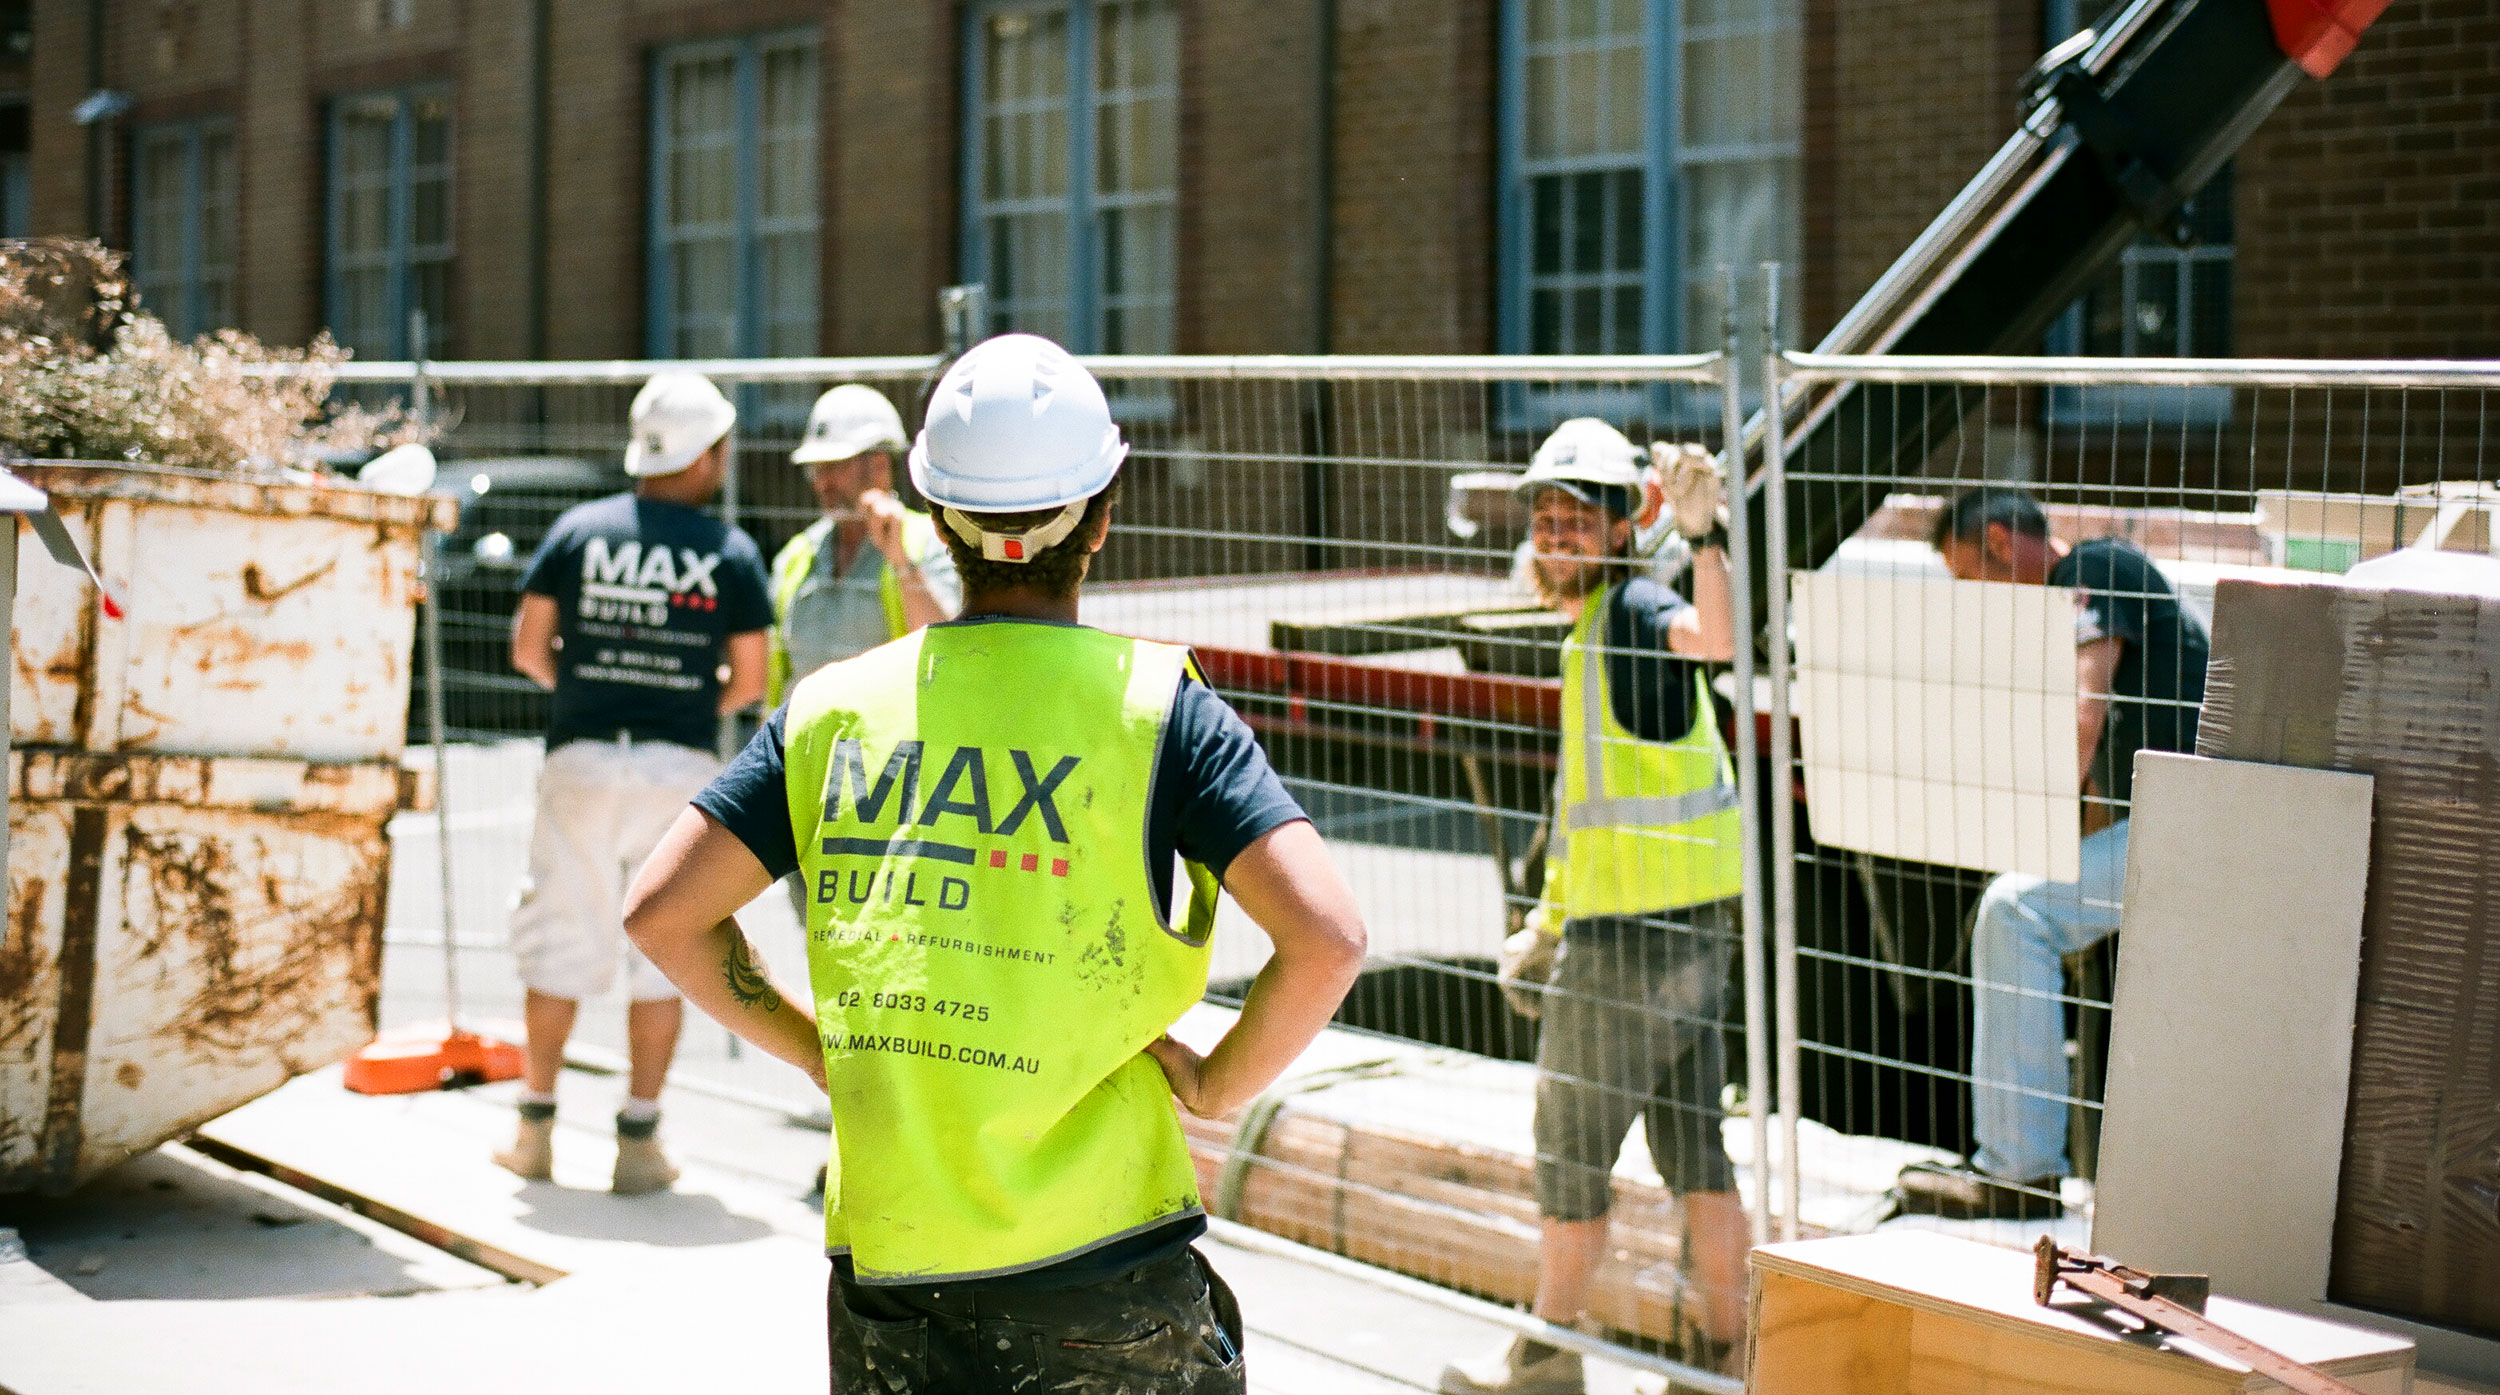 MAX Build site staff attending to a new delivery